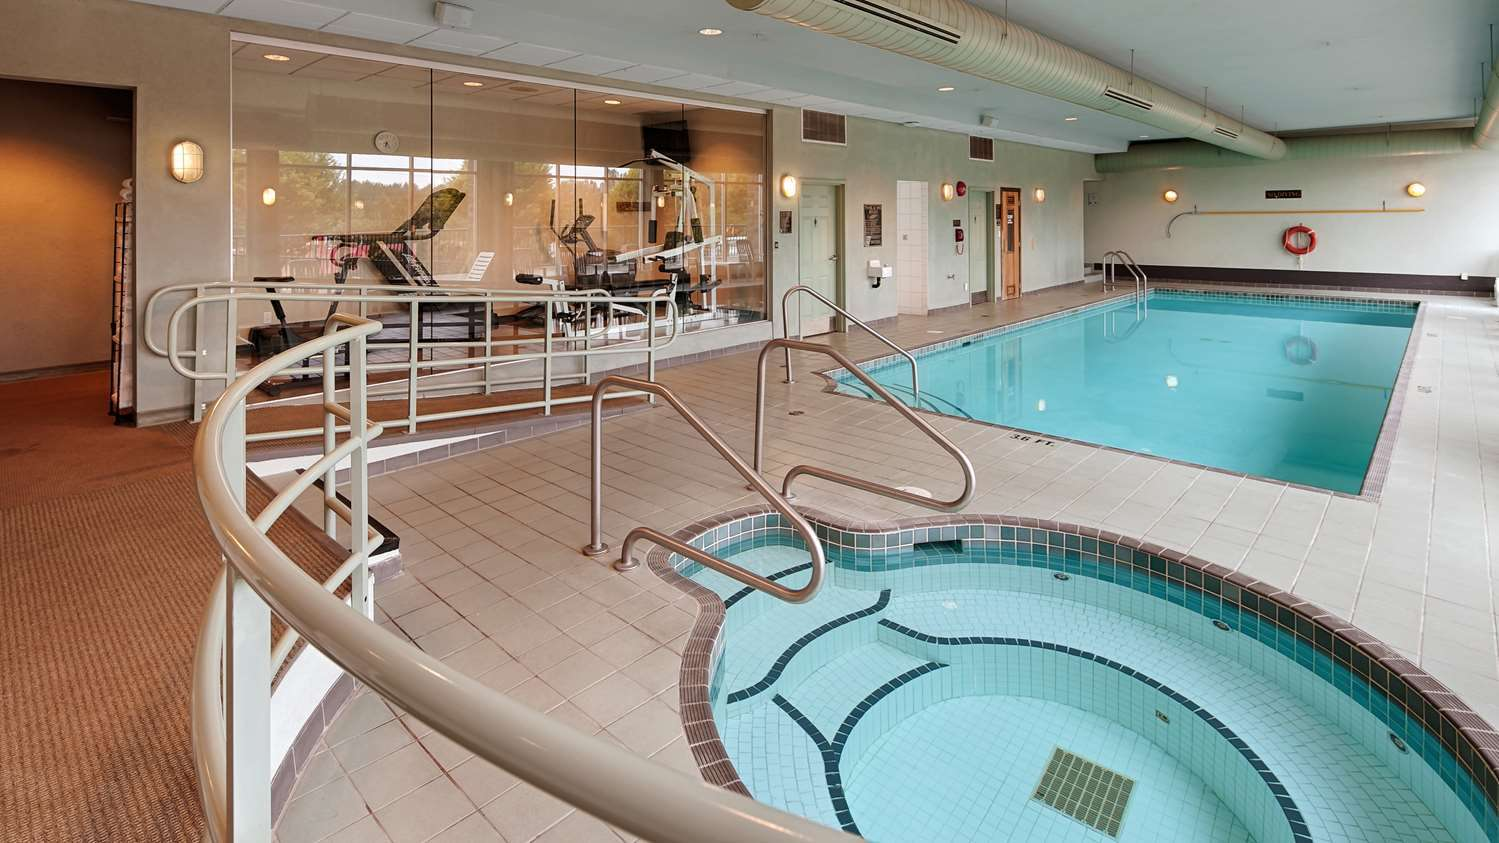 Best Western Plus Mission City Lodge - Located in downtown Mission just off Lougheed Highway, this hidden oasis is an amazing pool for beginner and intermediate swimmers to learn in. Swimmers can warm up at the end of their lesson in our onsite hot tub and sauna. Observing parents will enjoy lounge chair seating, free towel service, wifi, and a Starbucks located just around the corner.